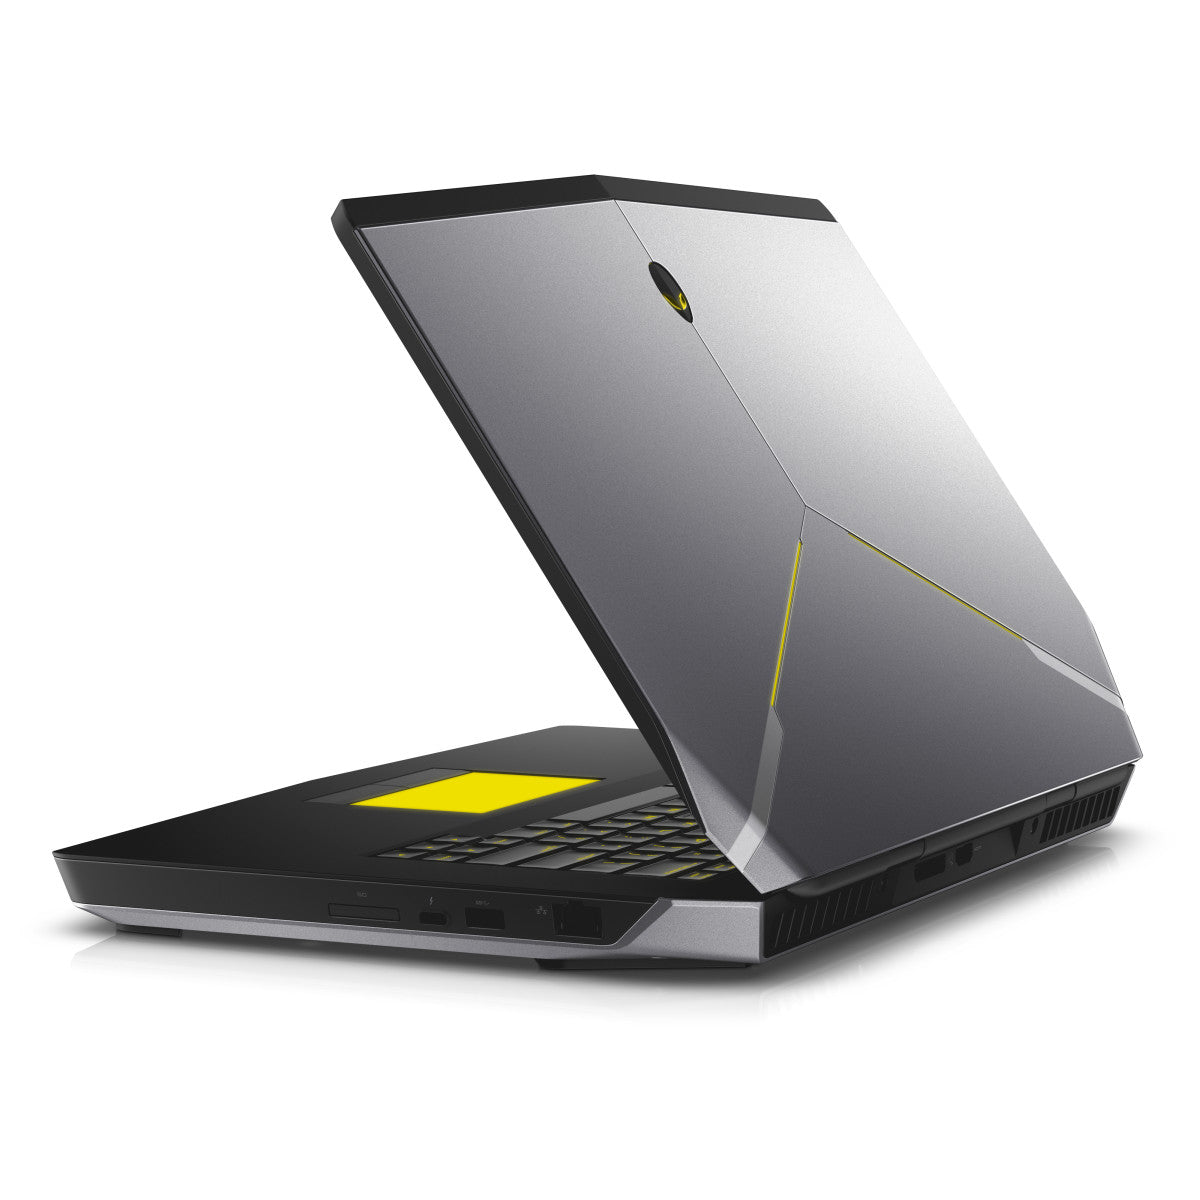 Refurbished Dell Alienware 15 R2 15 6